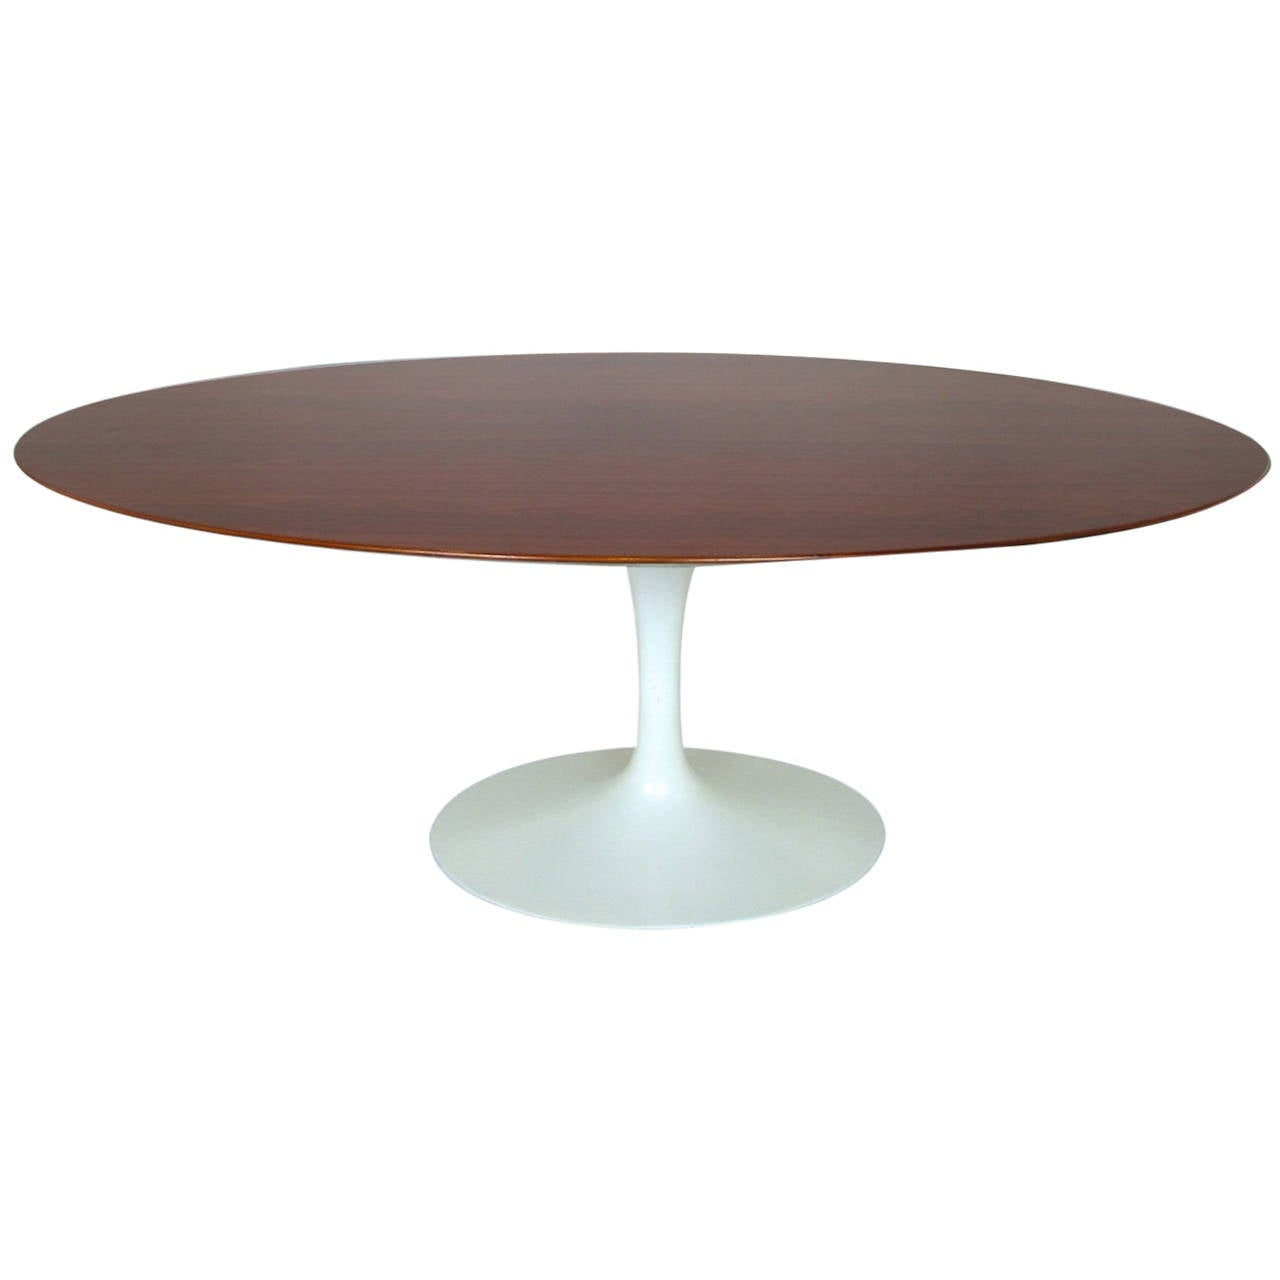 Eero Saarinen for Knoll Rosewood Dining Table at 1stdibs : 1687872l from www.1stdibs.com size 1280 x 1280 jpeg 30kB